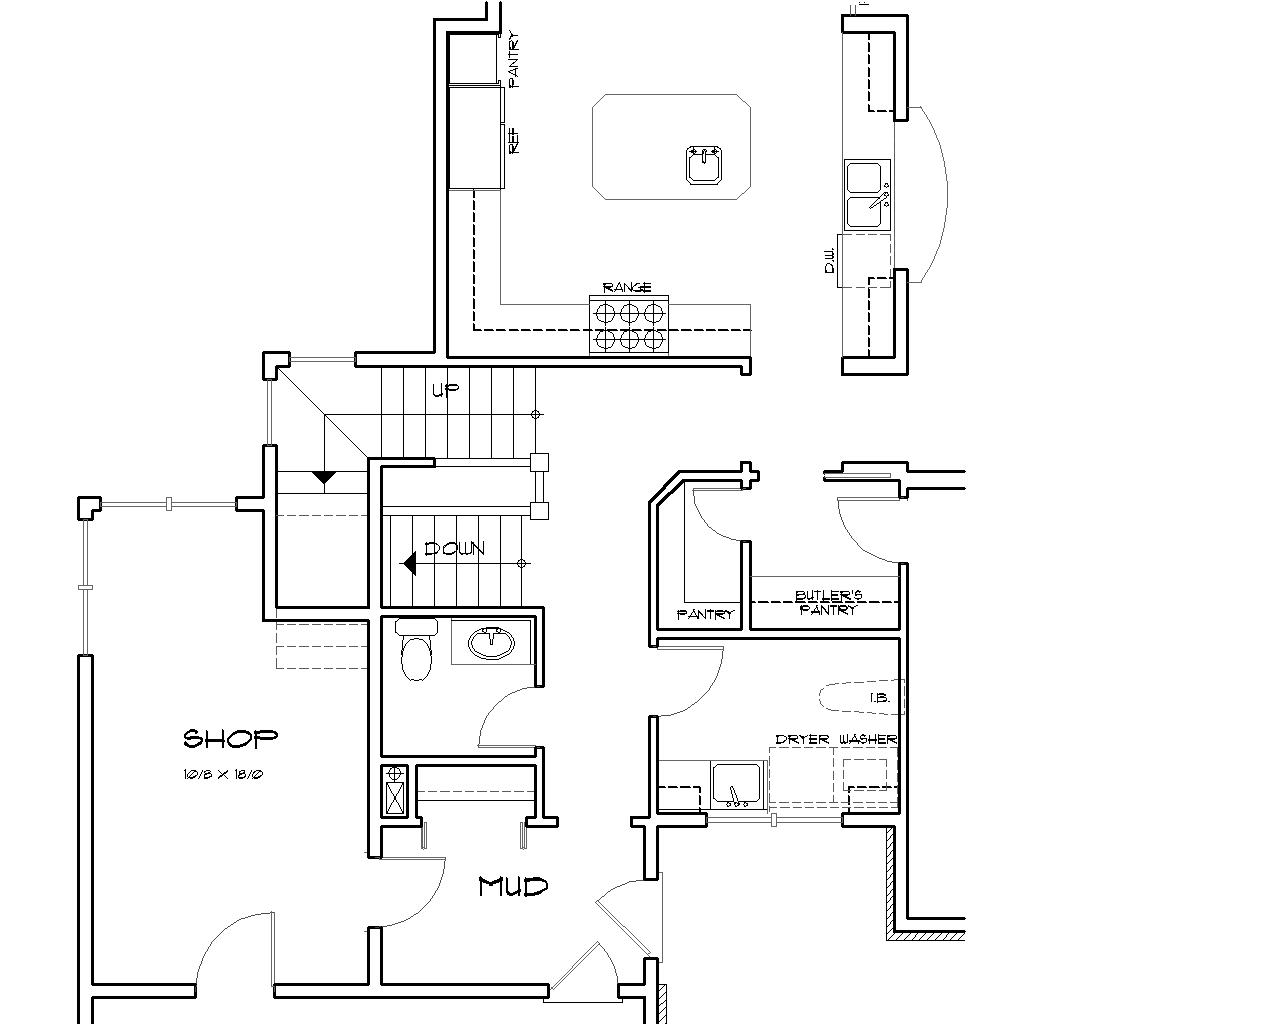 Basement Stair Location image of Farnsworth House Plan